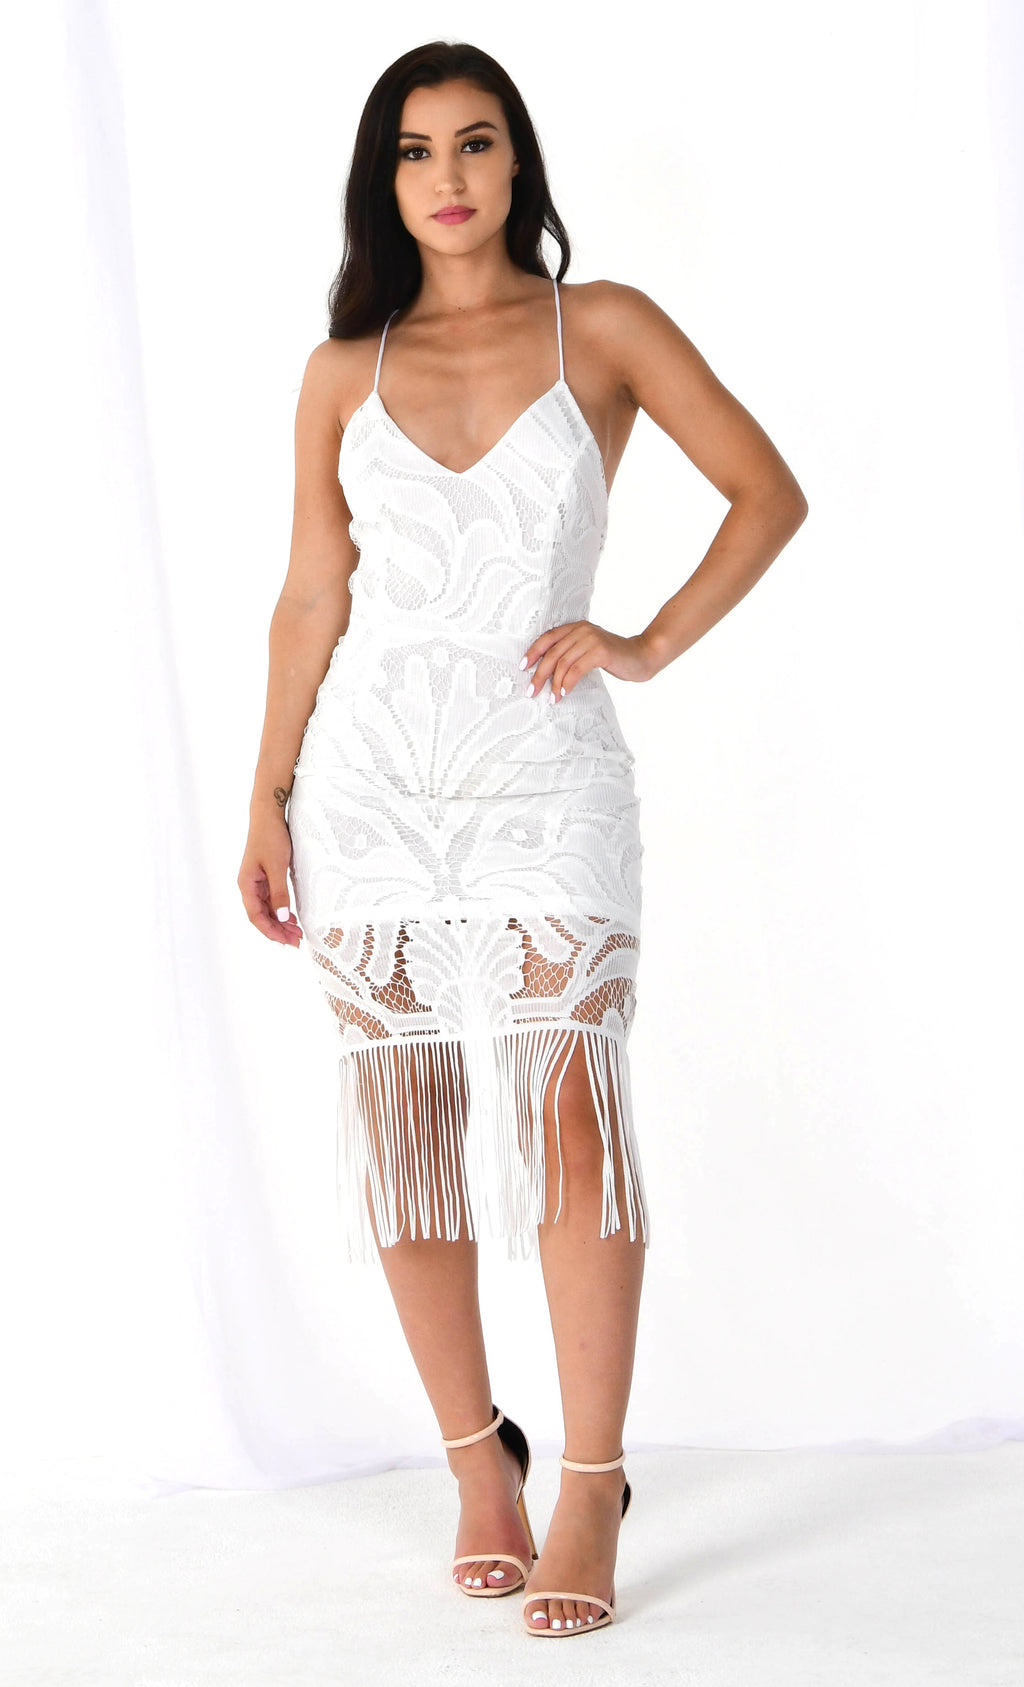 It's Your Move White Sleeveless Spaghetti Strap Lace V Neck Tassel Fringe Crisscross Back Bodycon Midi Dress - 4 Colors Available